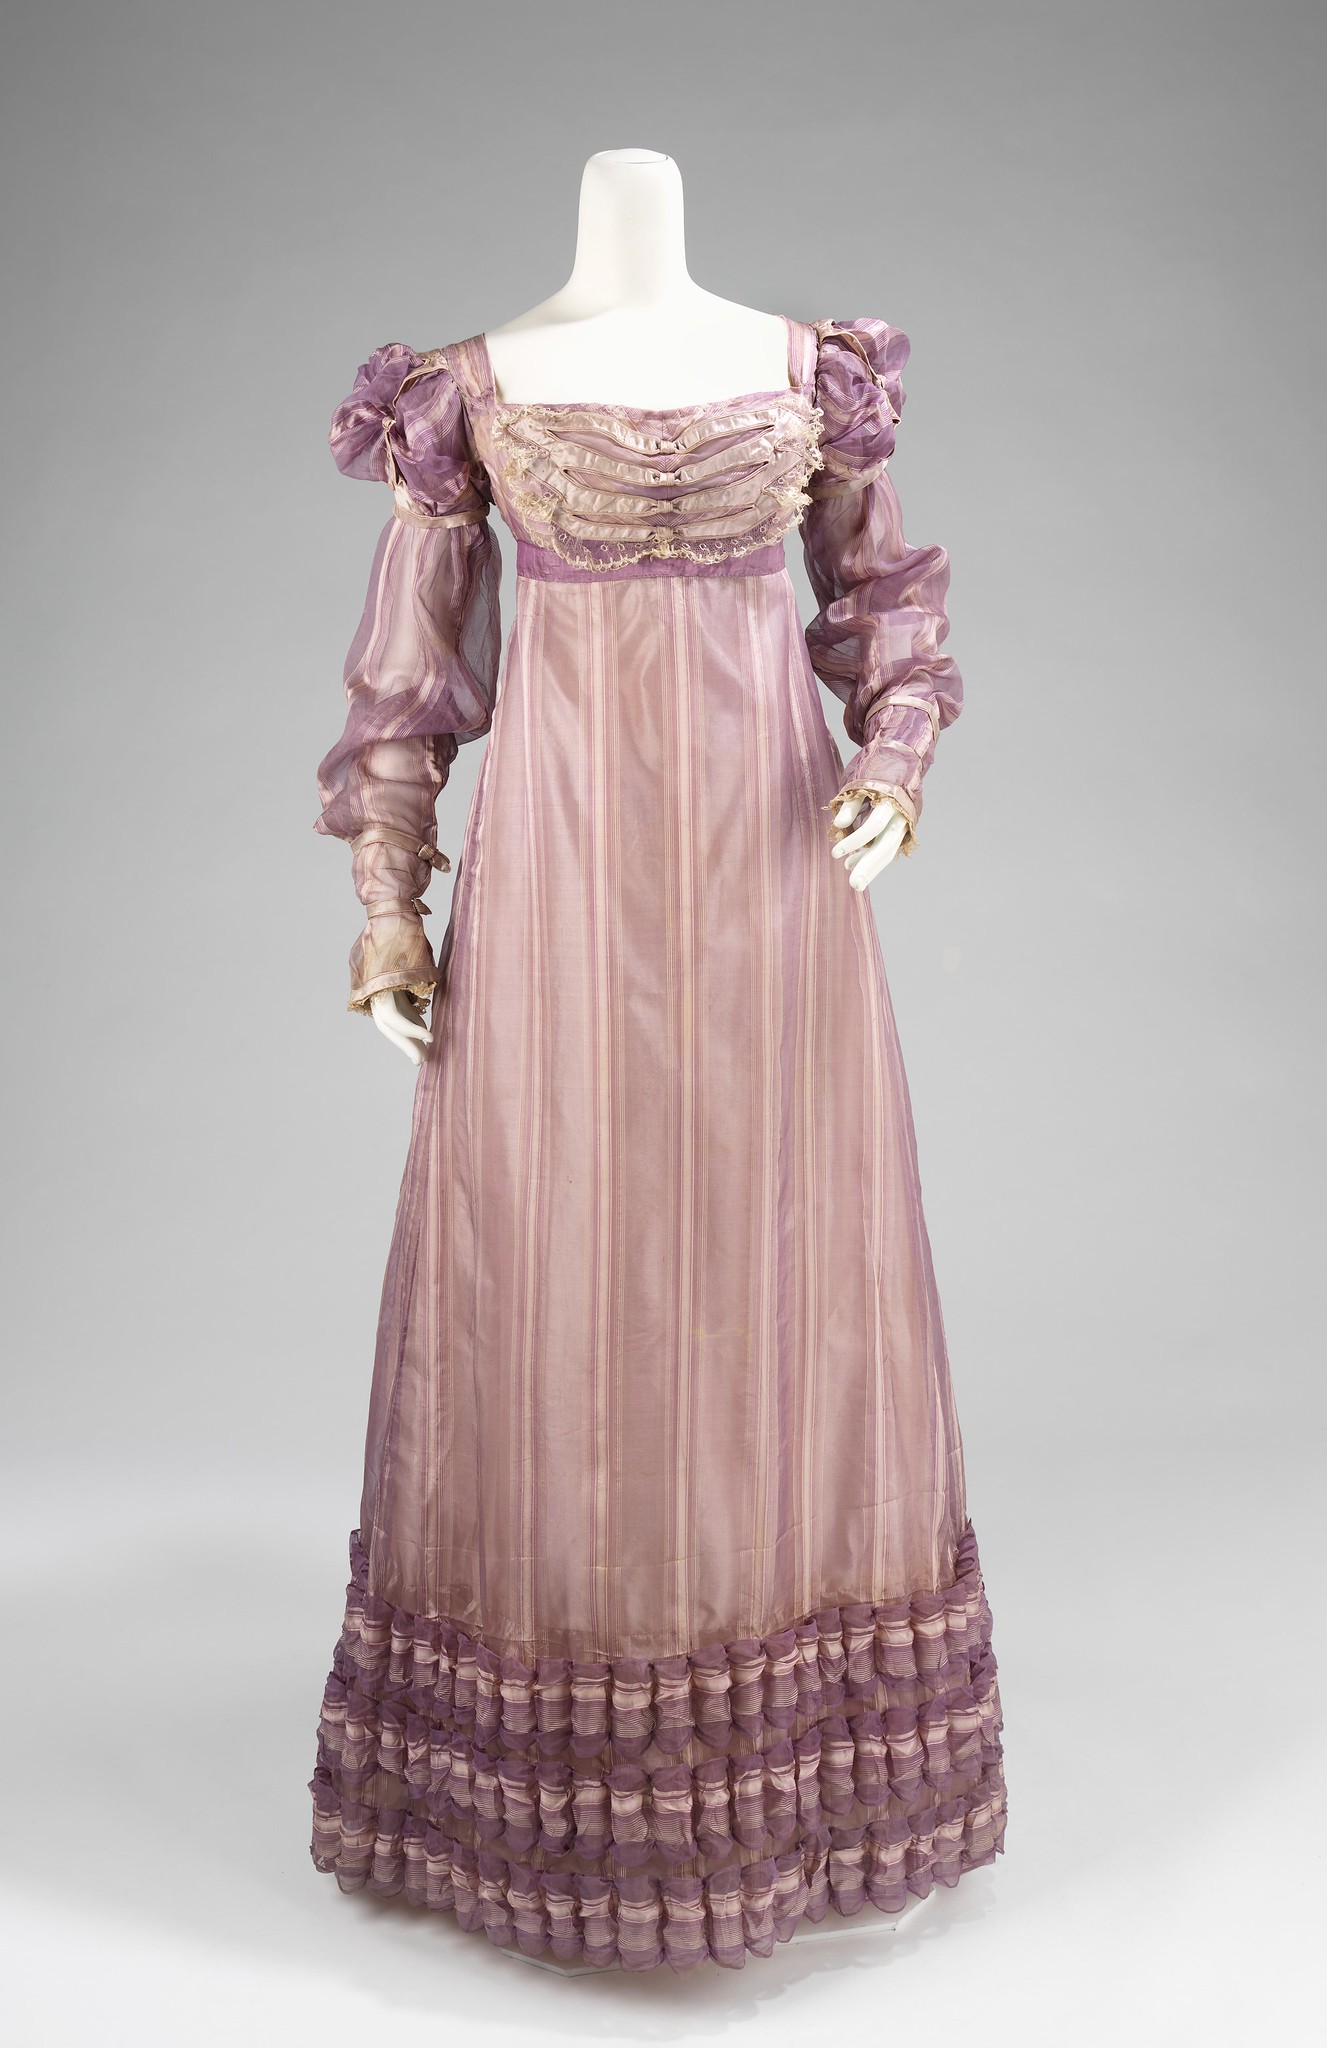 1820 Ball gown. American. Silk. metmuseum